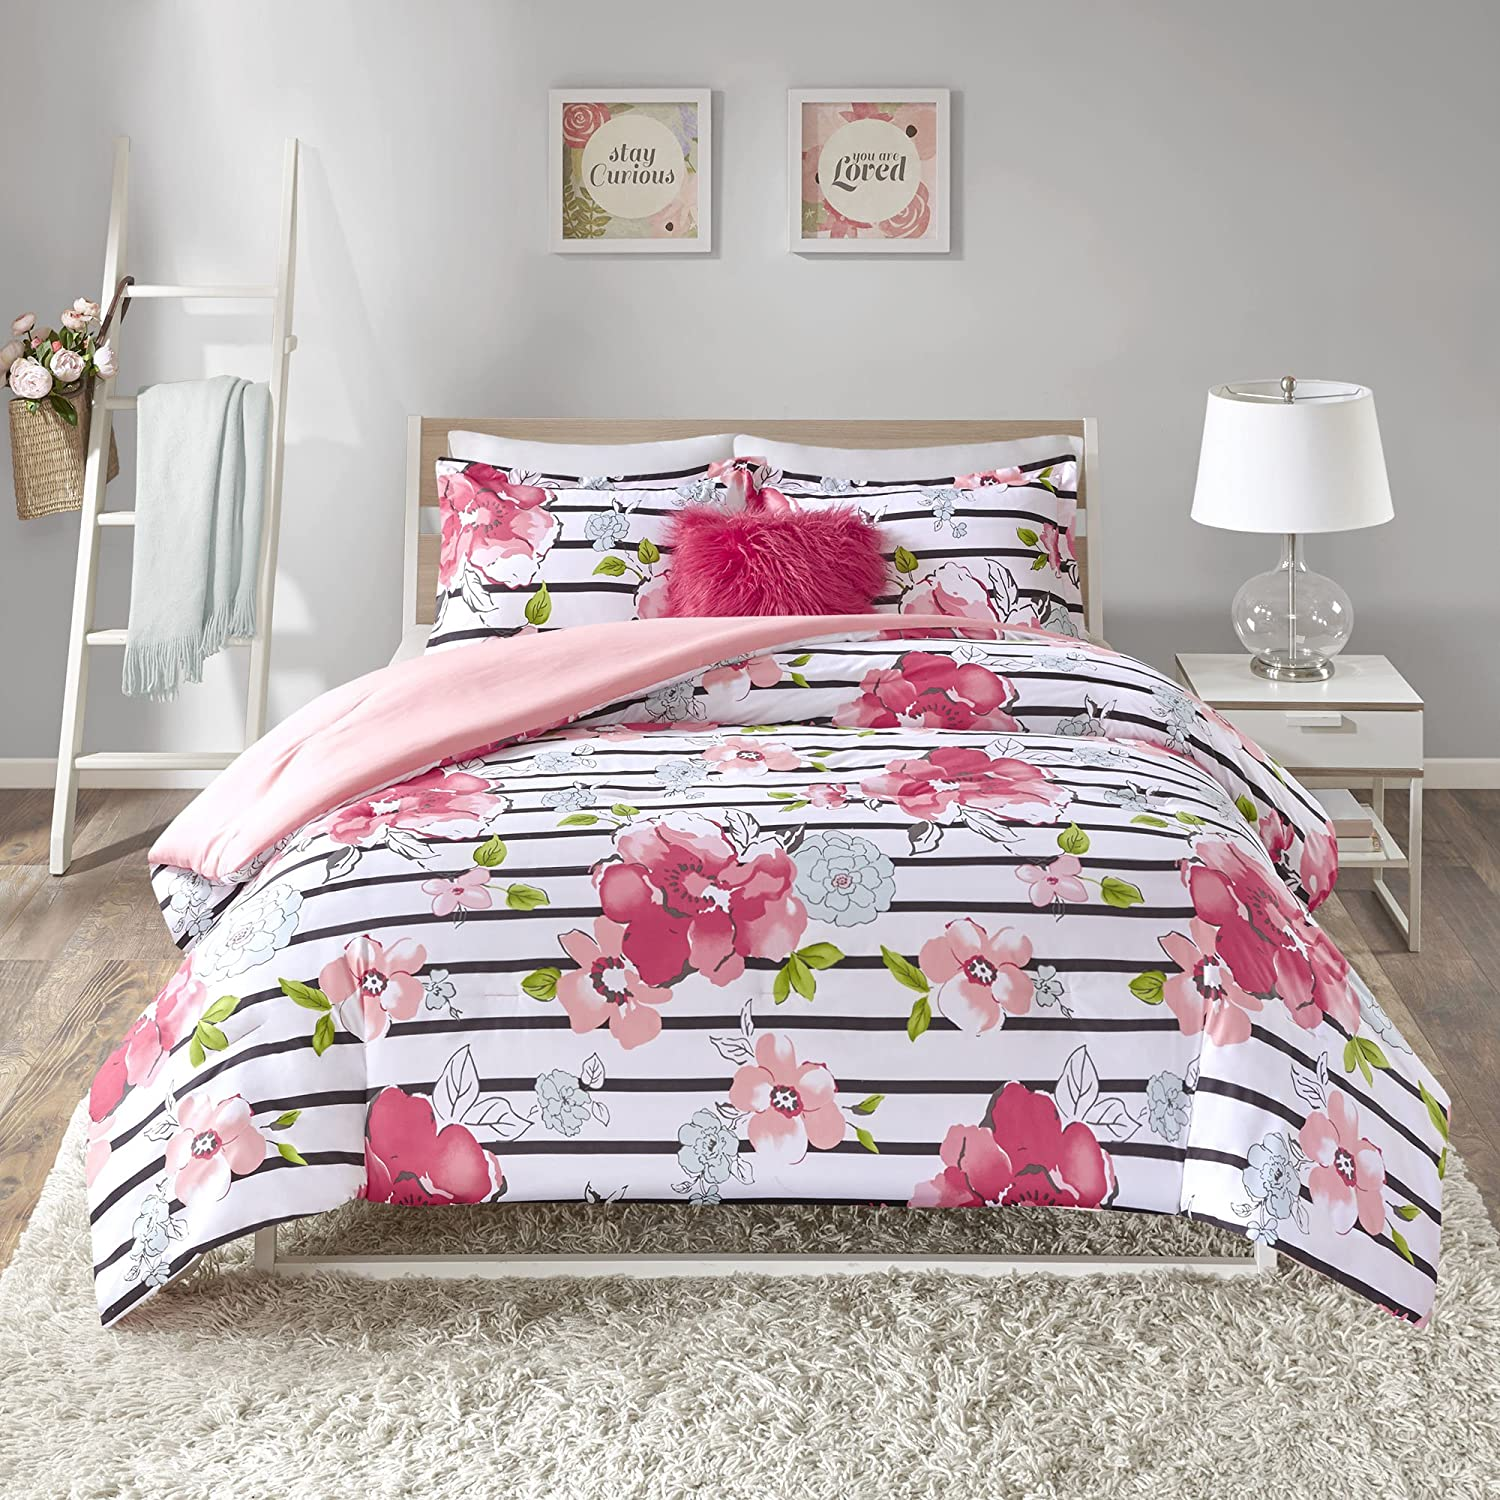 floral paris quilt duvet vintage style bedding sale ease comforter comforters with french clearance cover